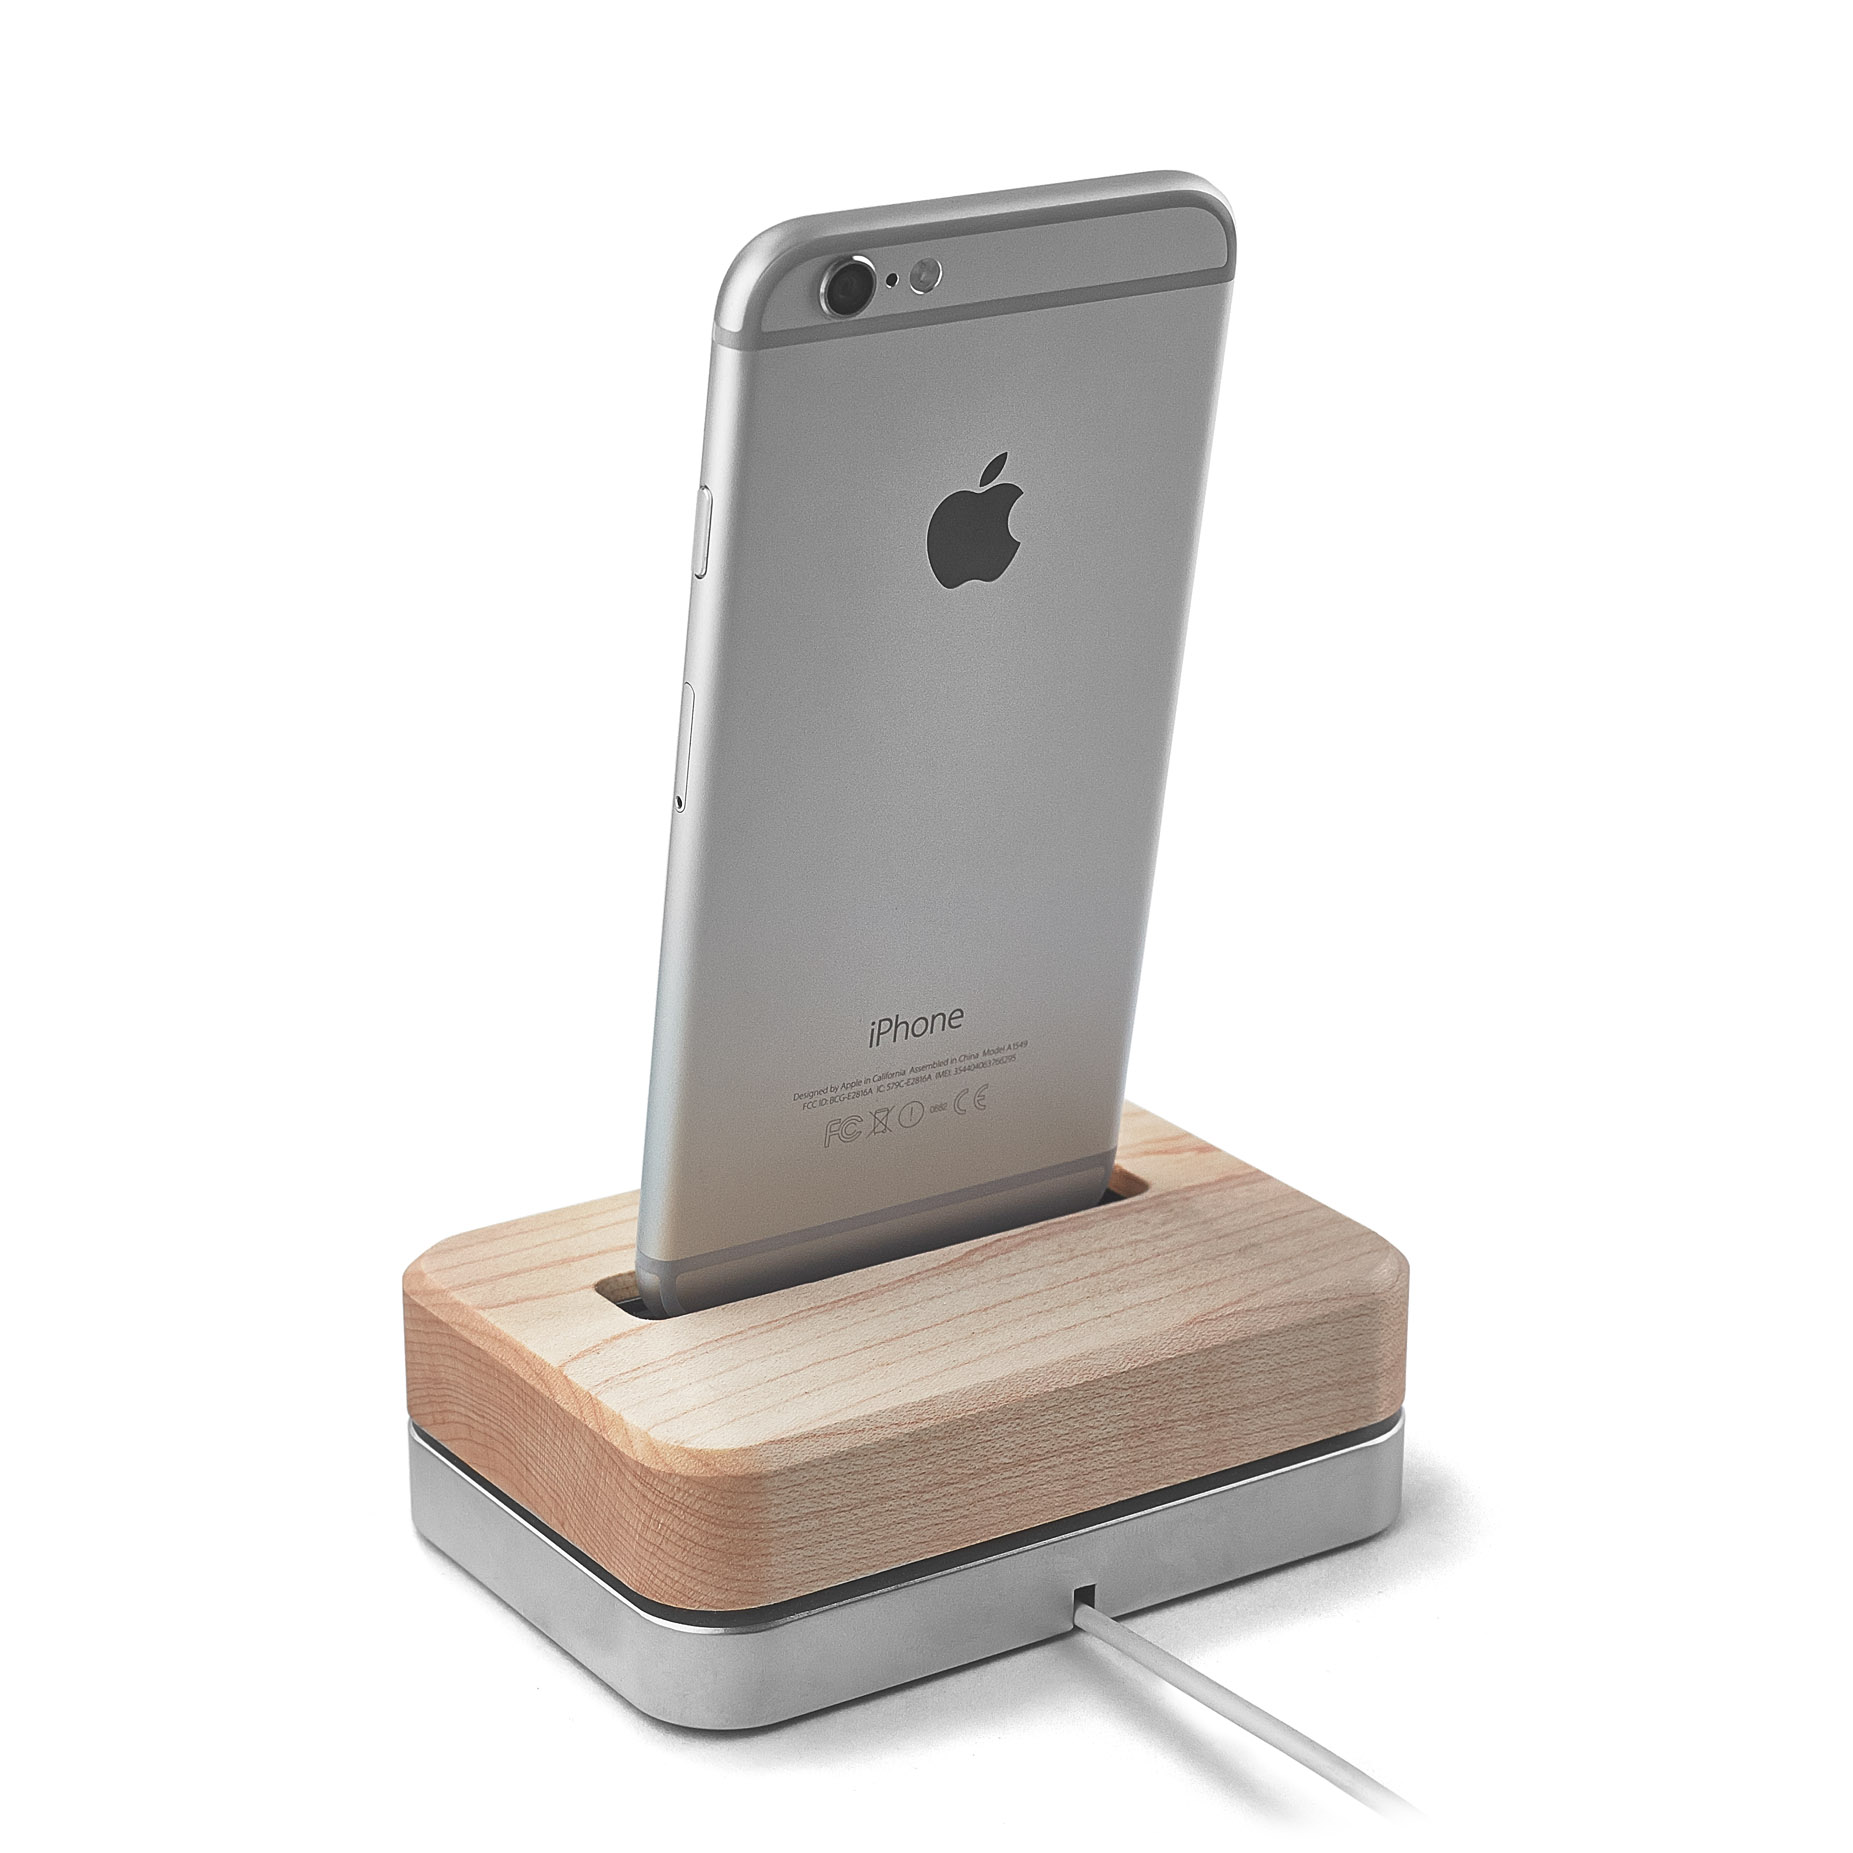 iphone 6 dock wooden iphone station 3 lb black stainless steel 11322